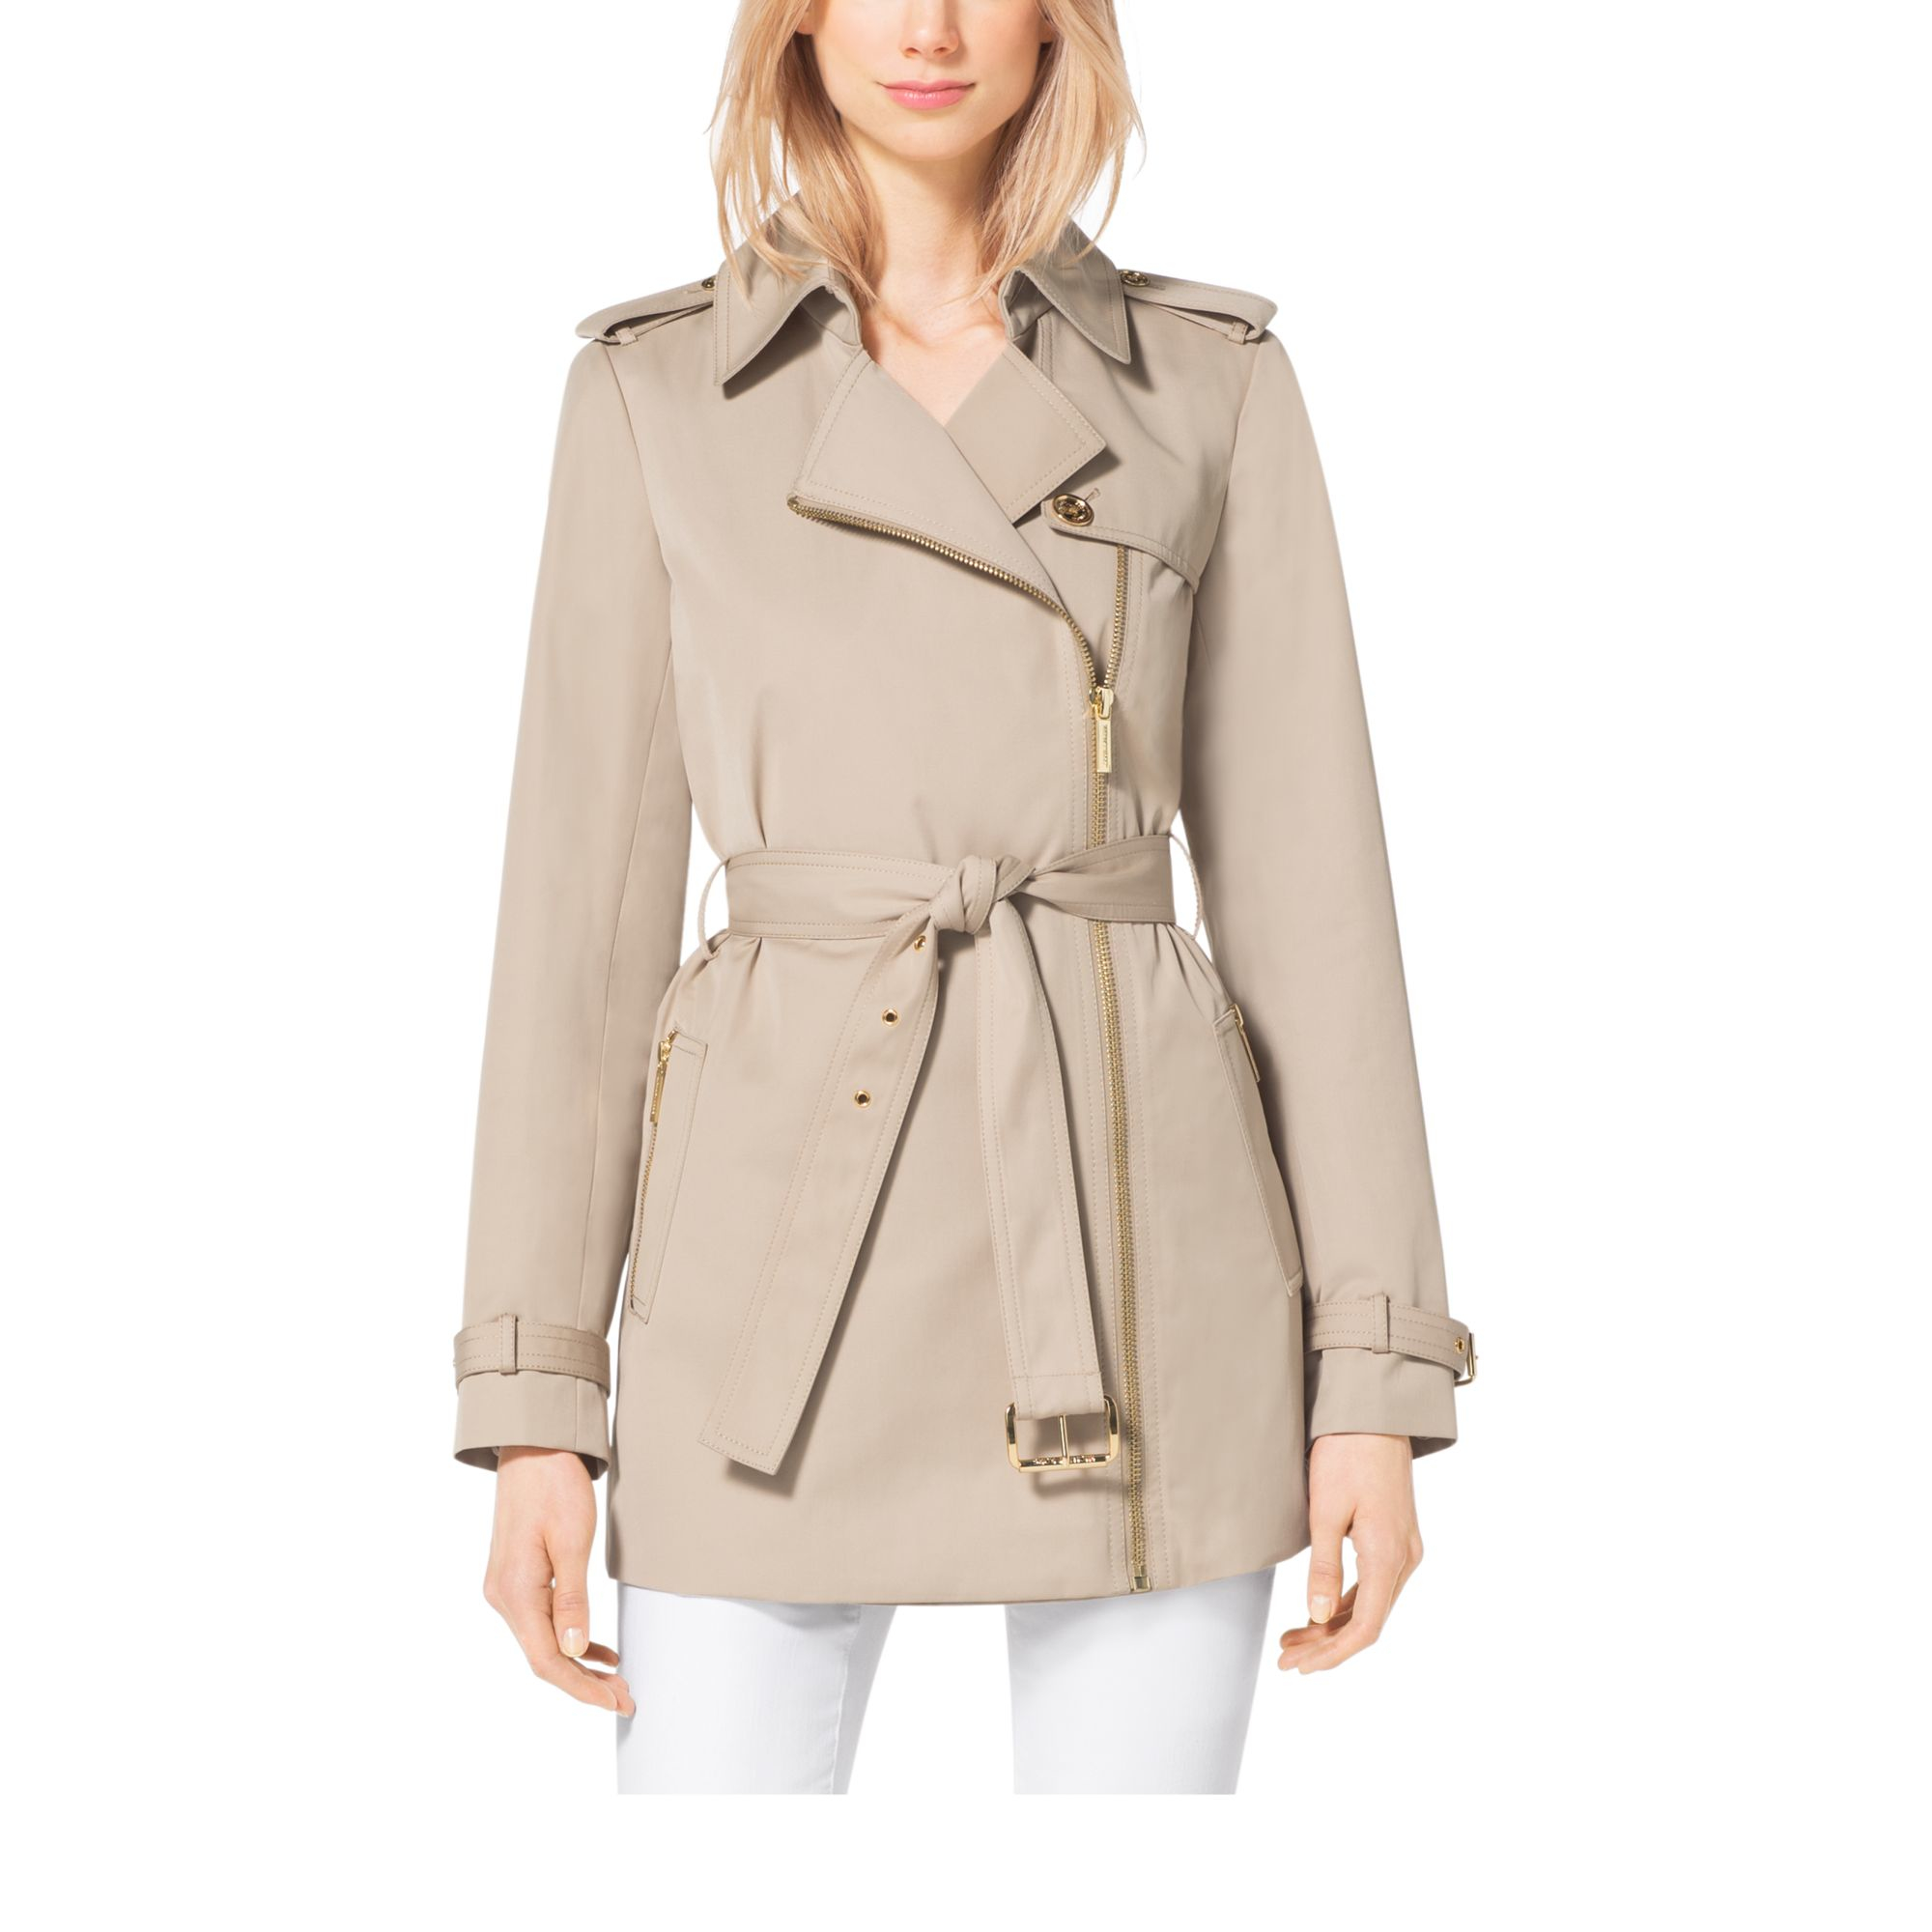 new appearance best sale find lowest price Michael Kors Natural Asymmetrical Zip-front Trench Coat